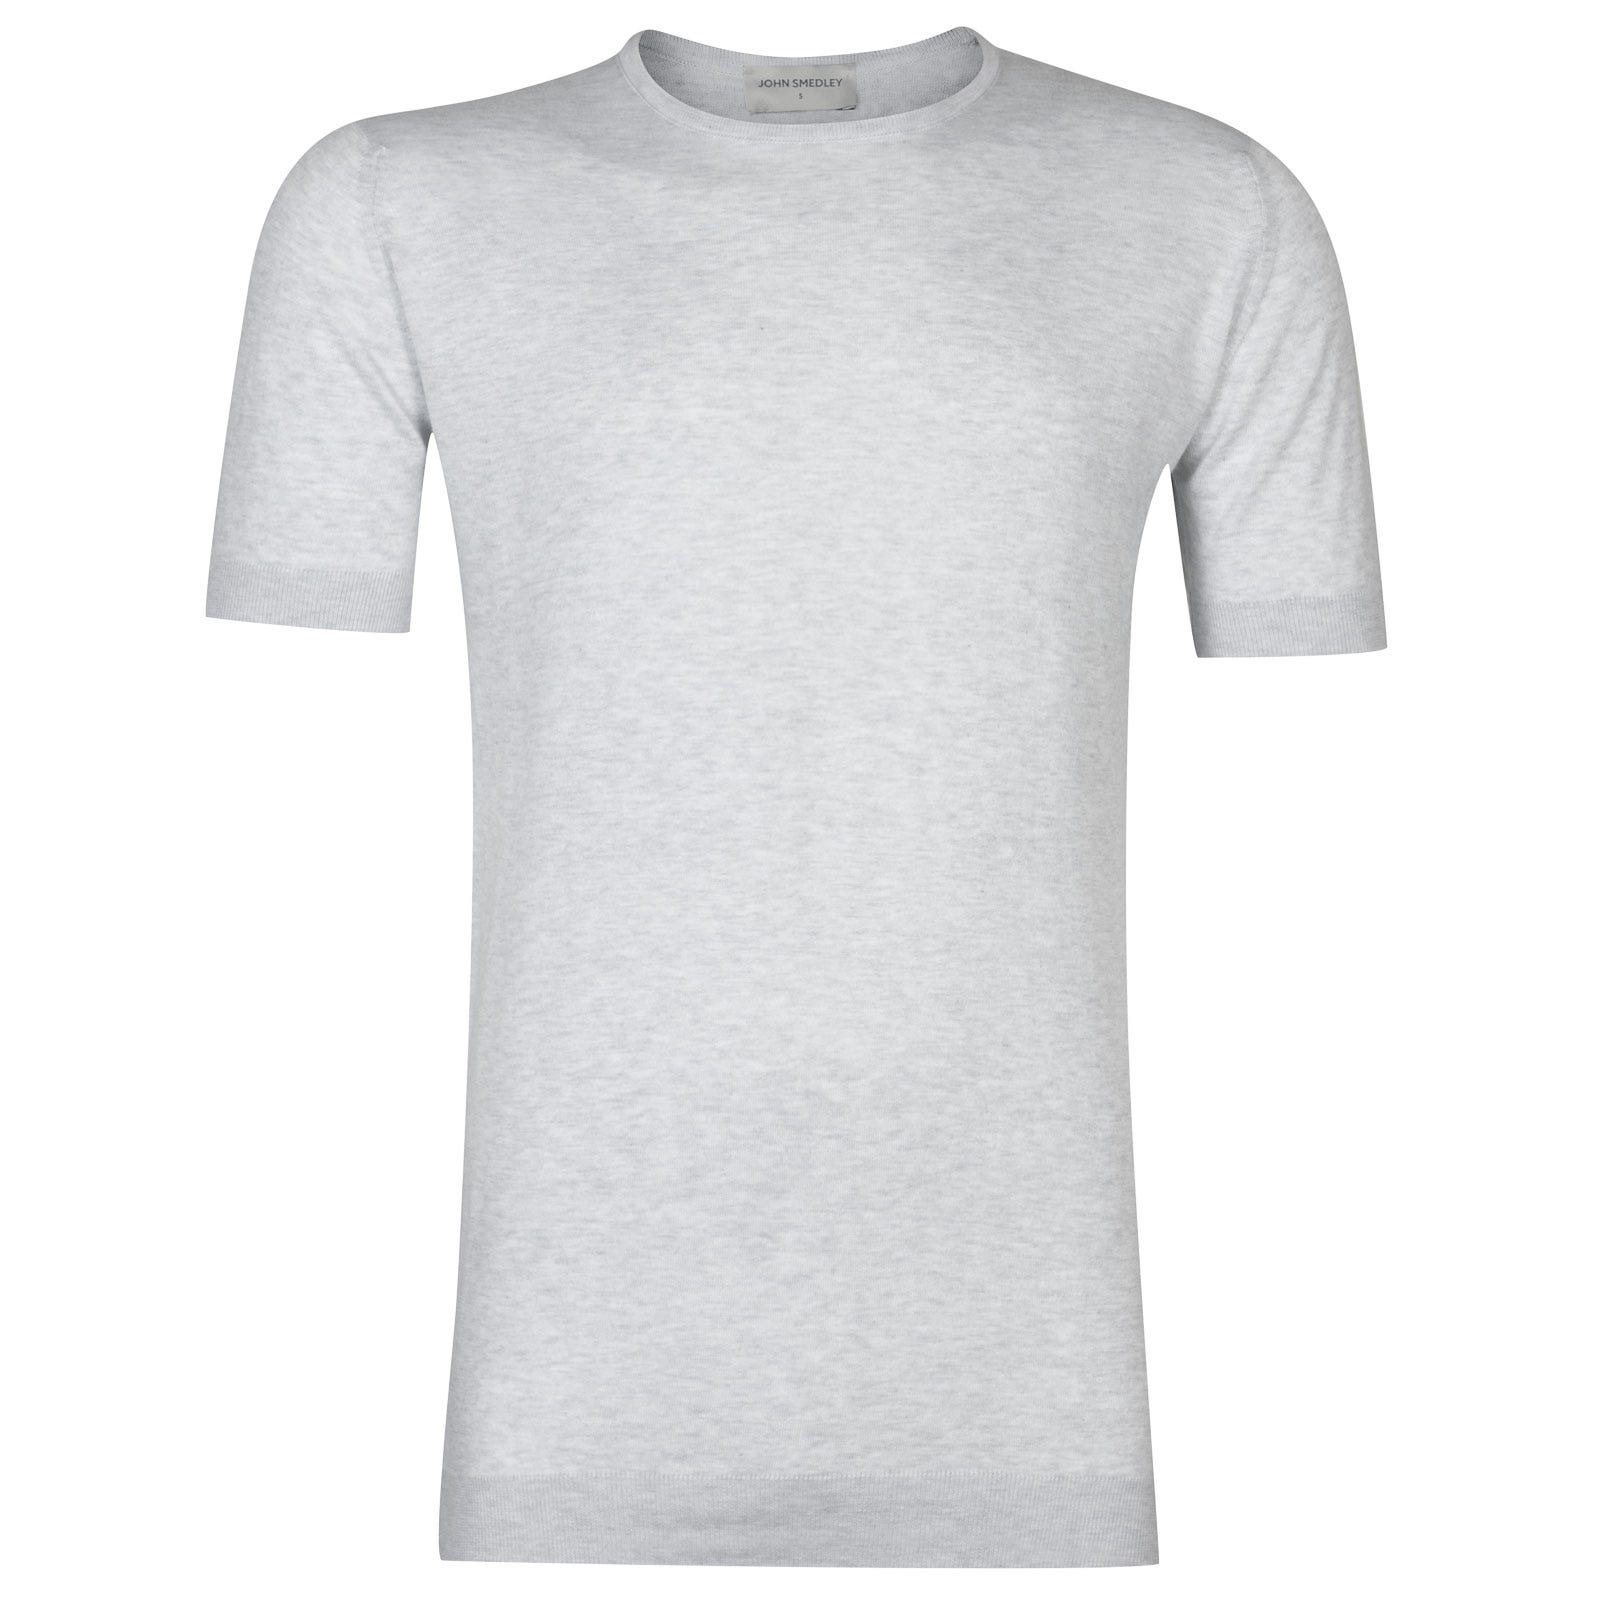 John Smedley belden Sea Island Cotton T-shirt in Feather Grey-L